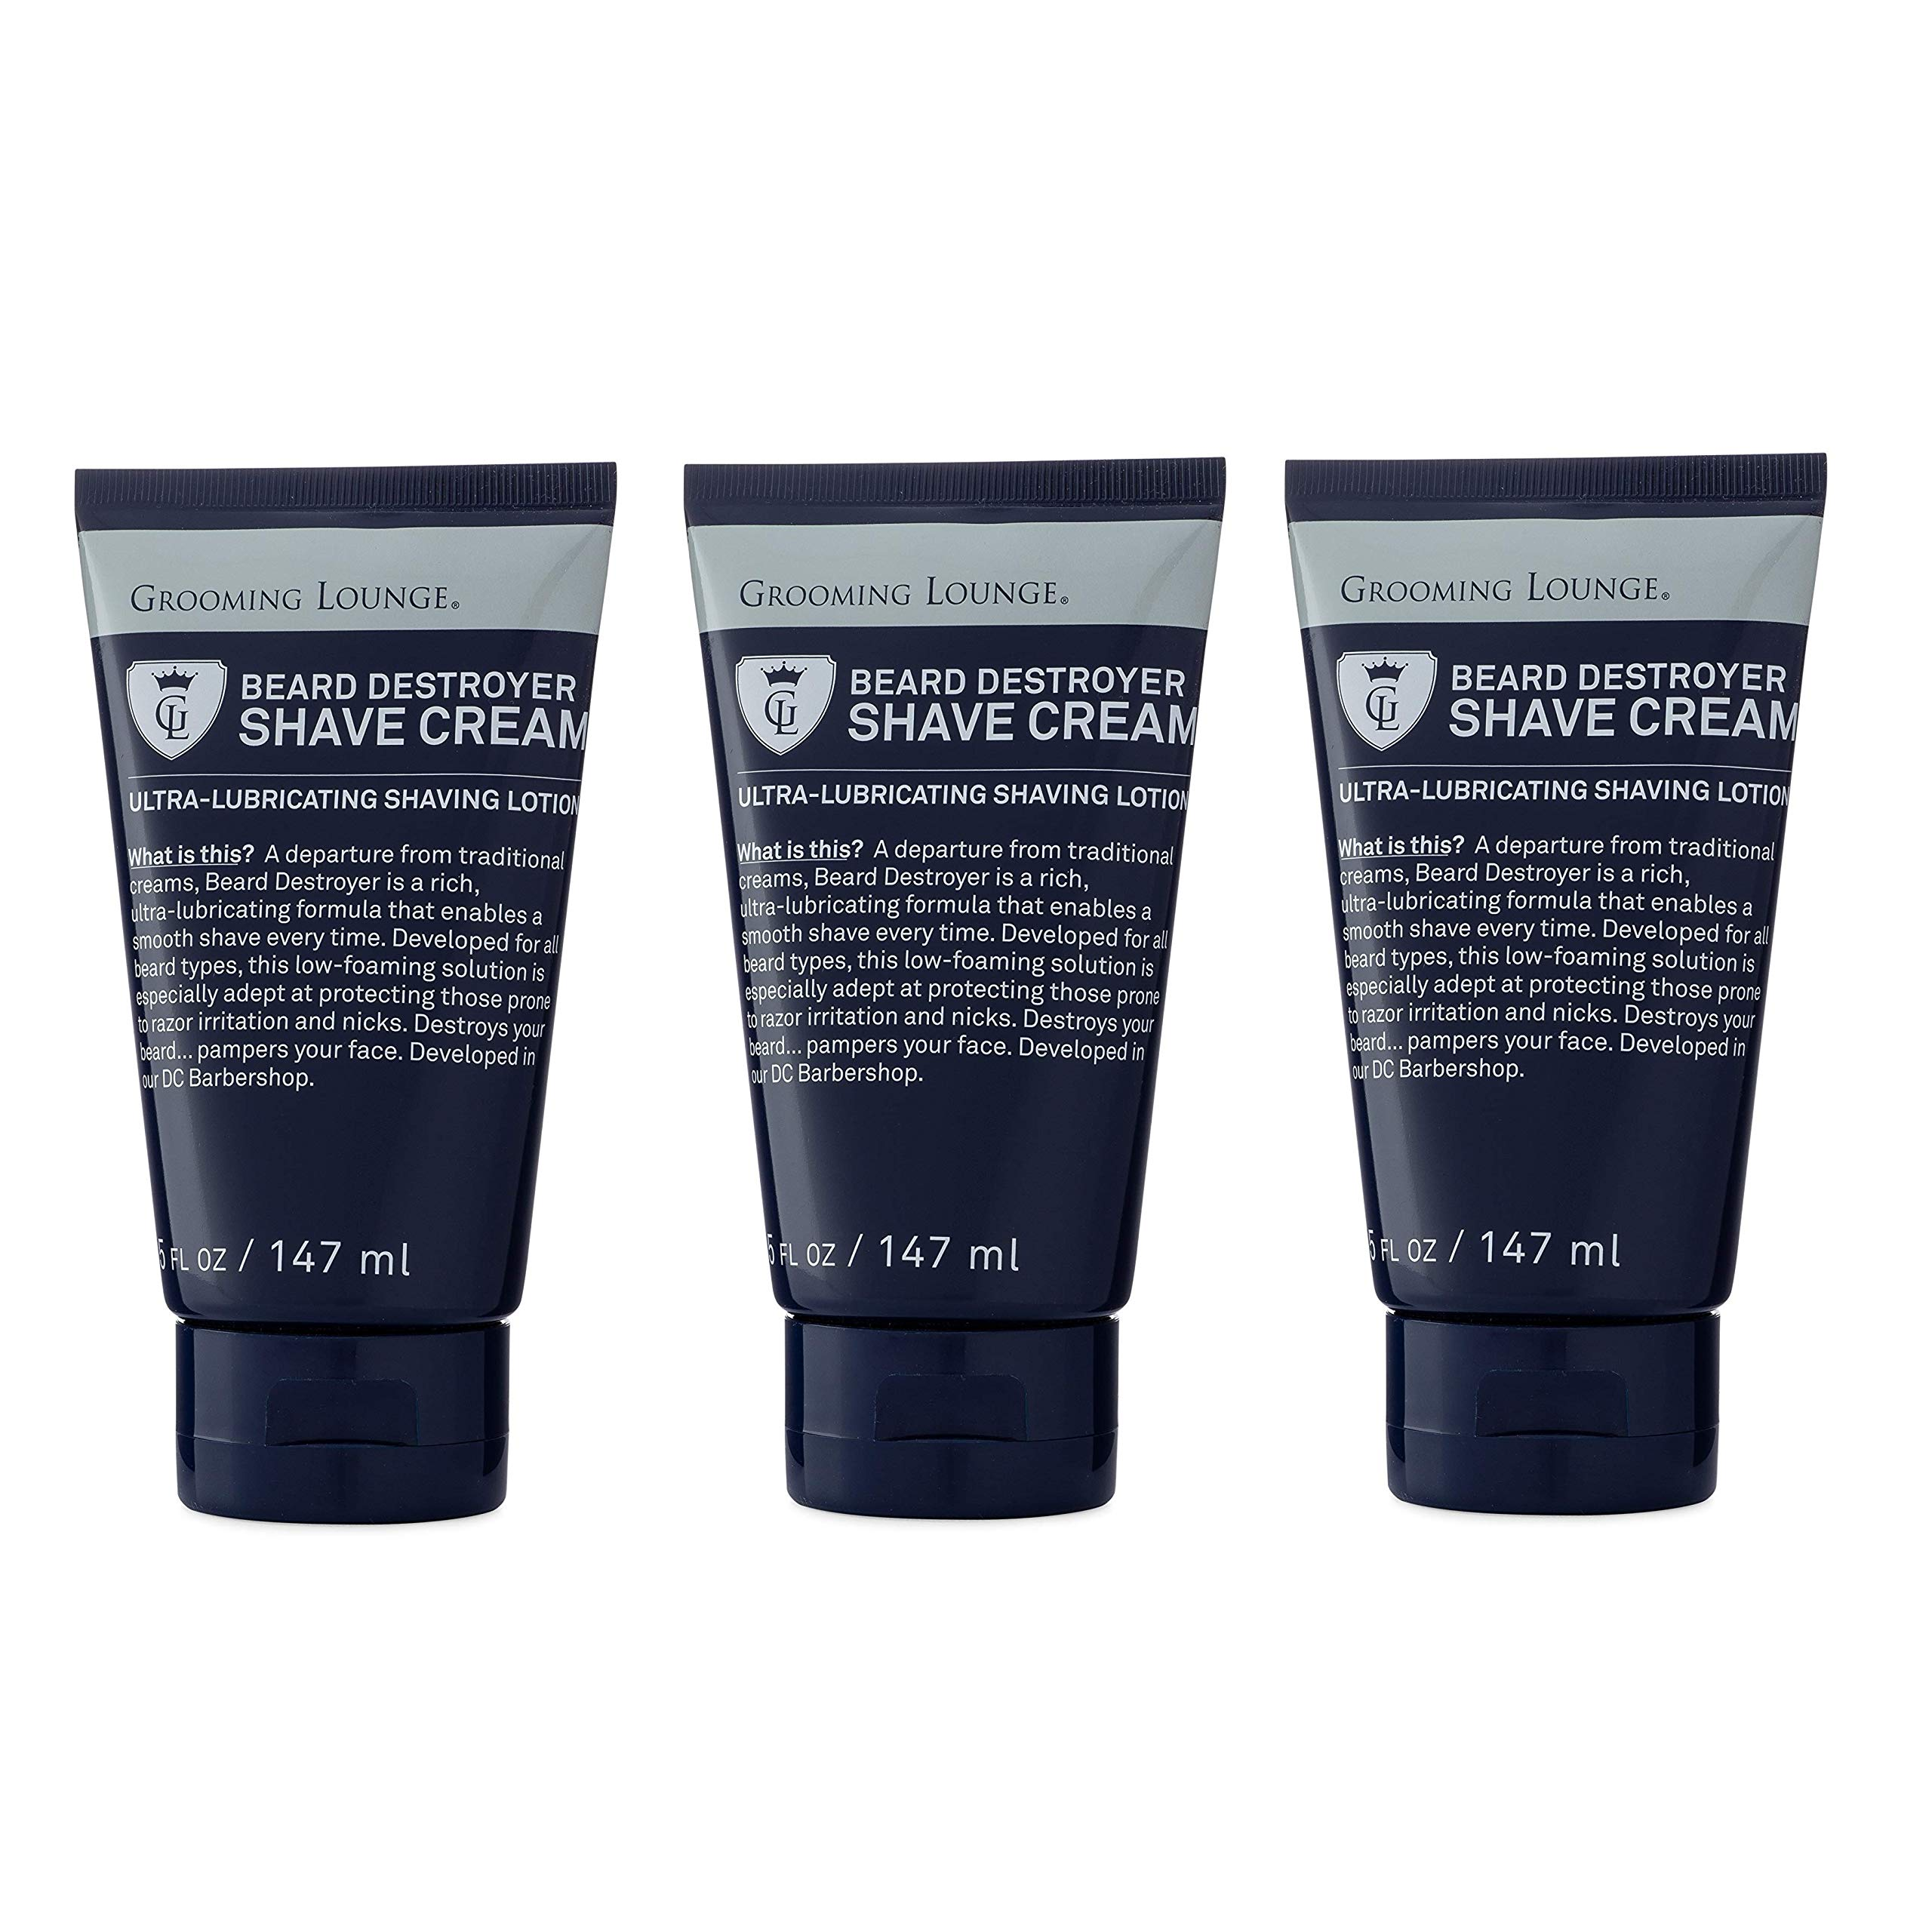 Grooming Lounge Beard Destroyer Shave Cream, Sensitive Skin, 5 oz, 3-Pack by Grooming Lounge